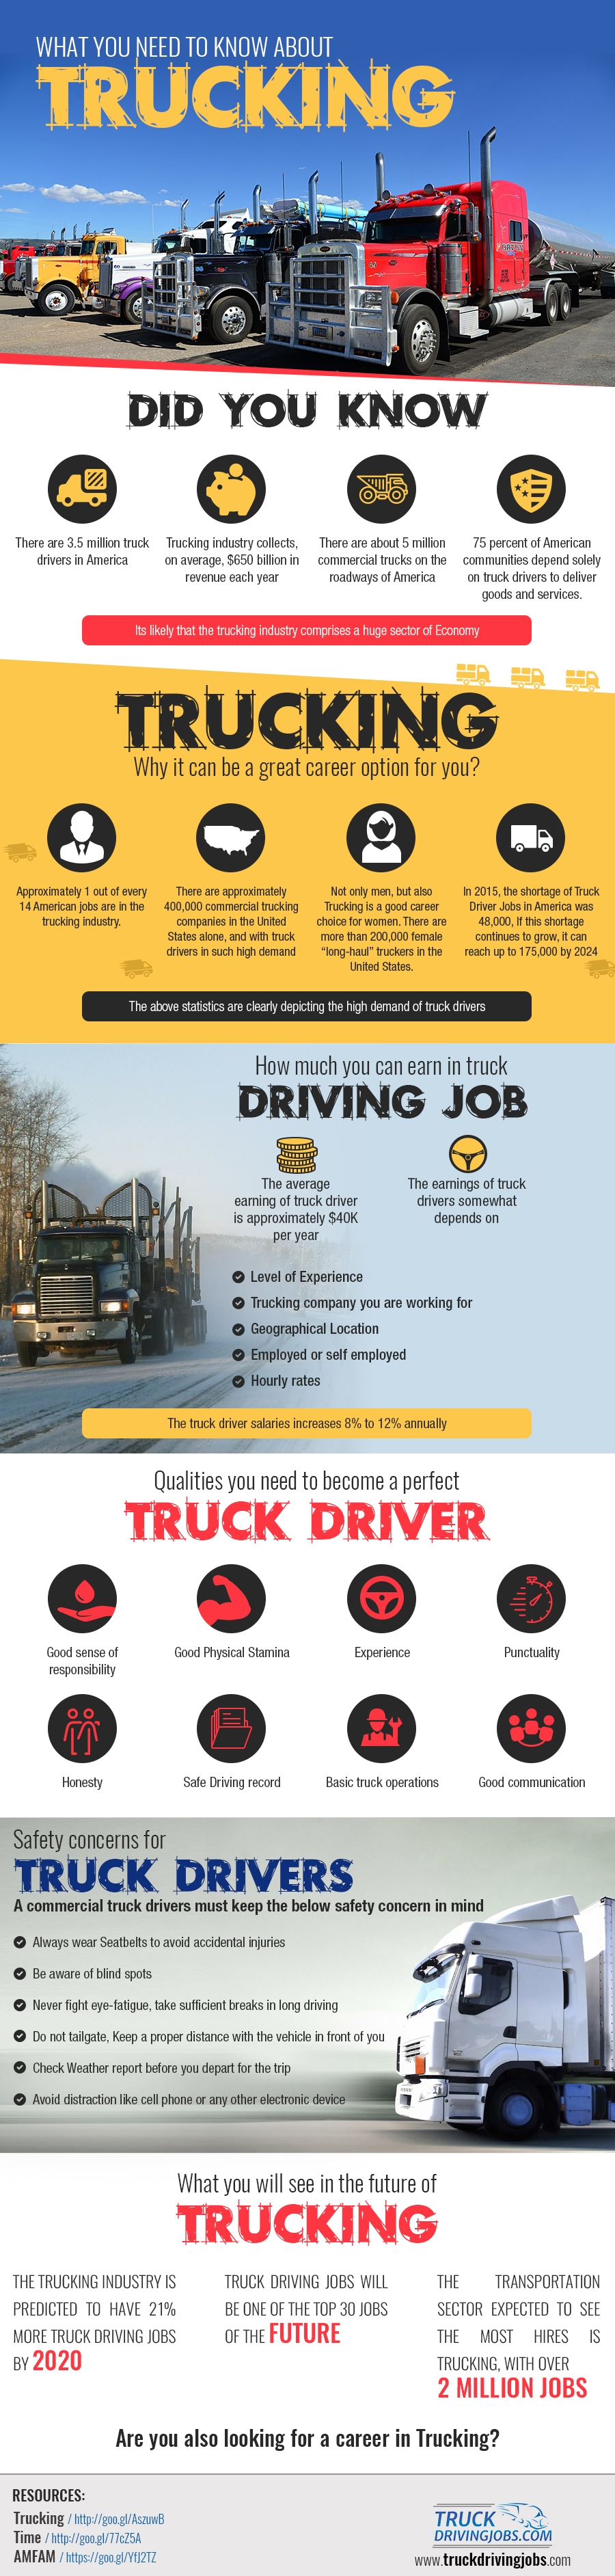 What You Need to Know About Trucking Infographic